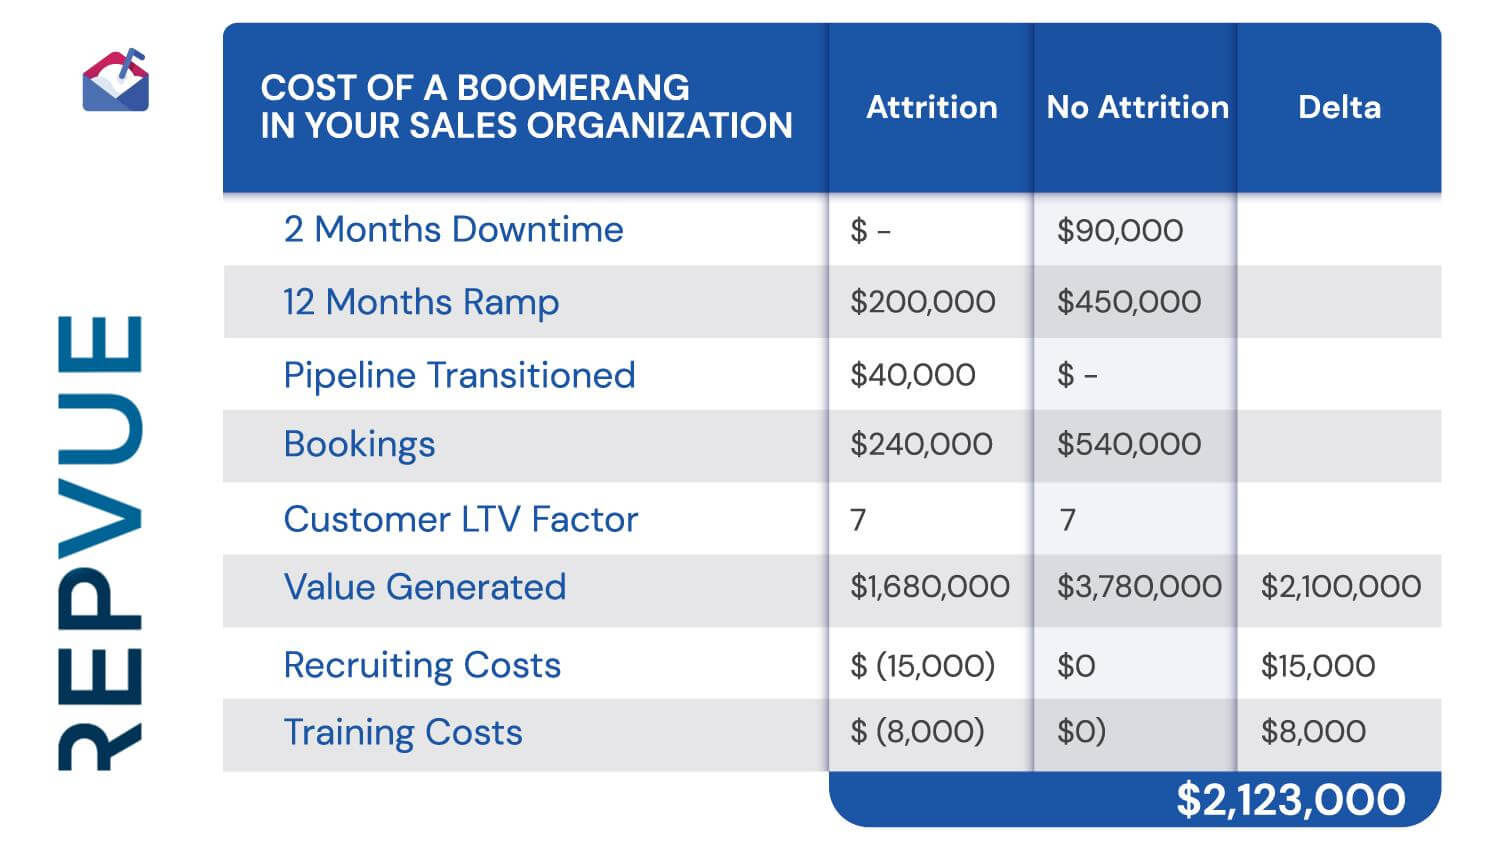 Cost of a Boomerang in Your Sales Organization